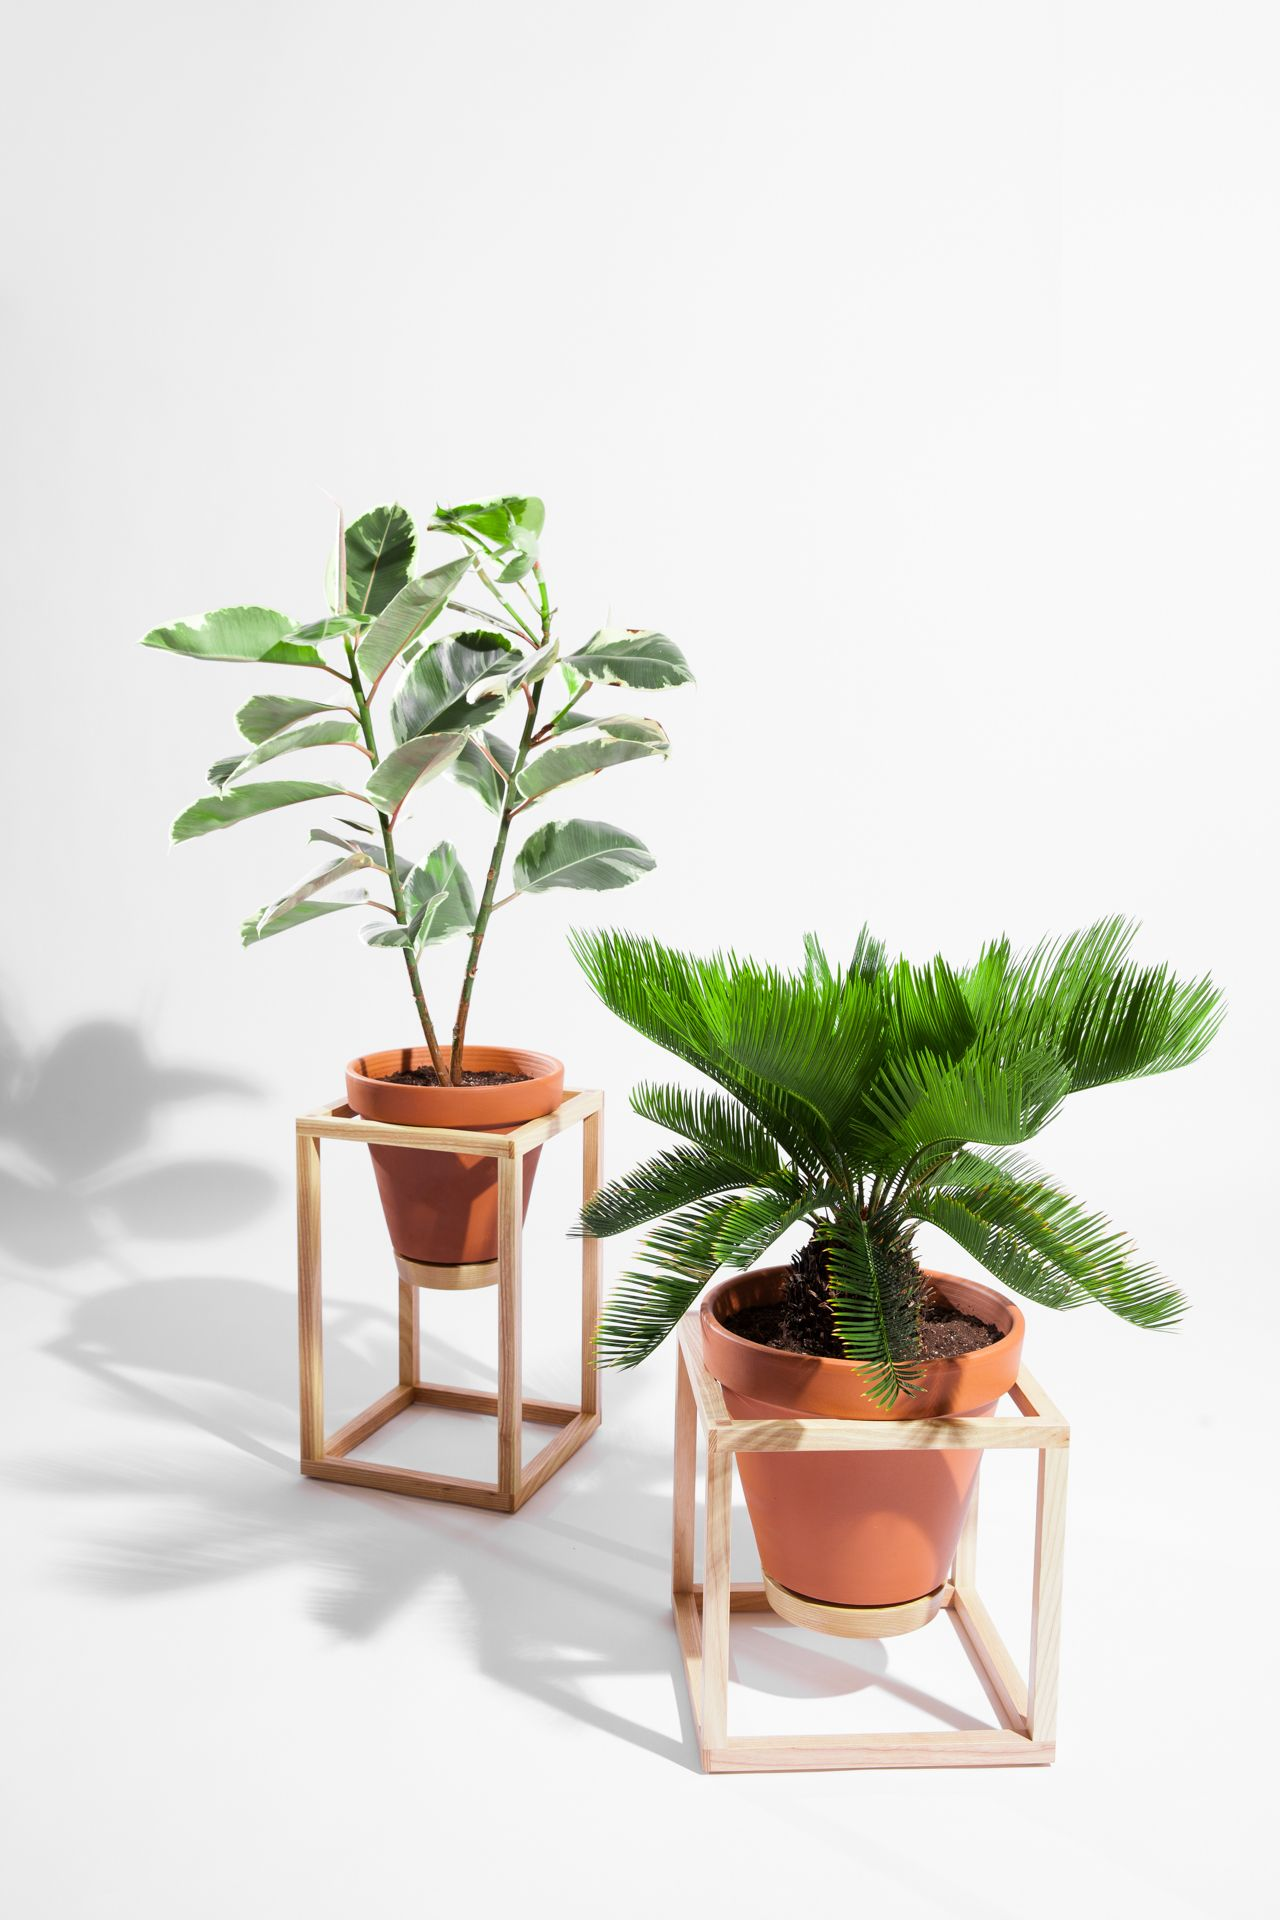 The Frame Planters  A Line Of Indoor Planters